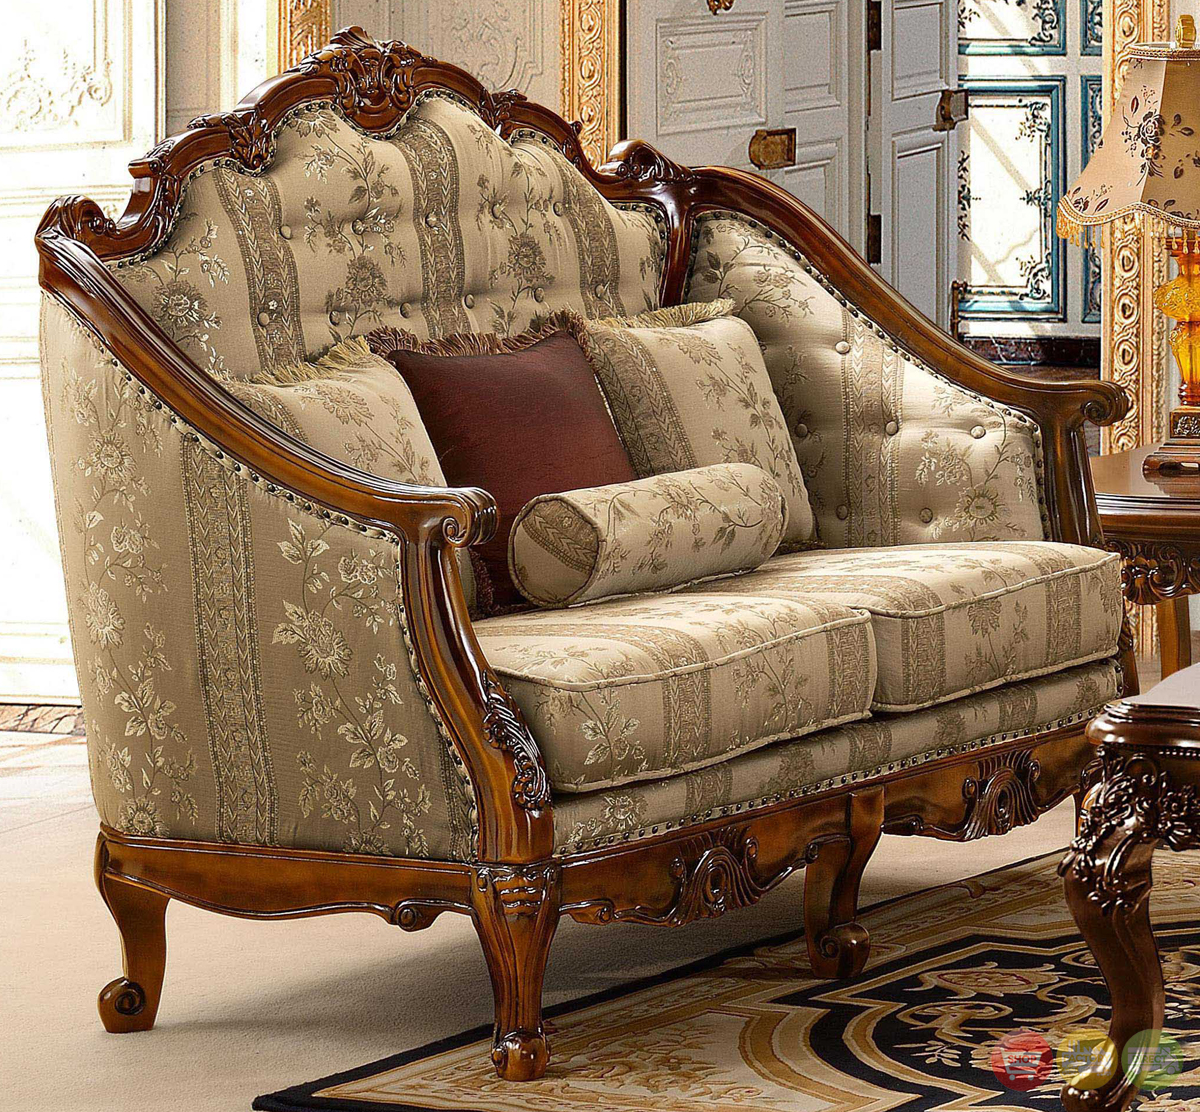 Luxury Living Room Set | Upholstered Living Room Furniture